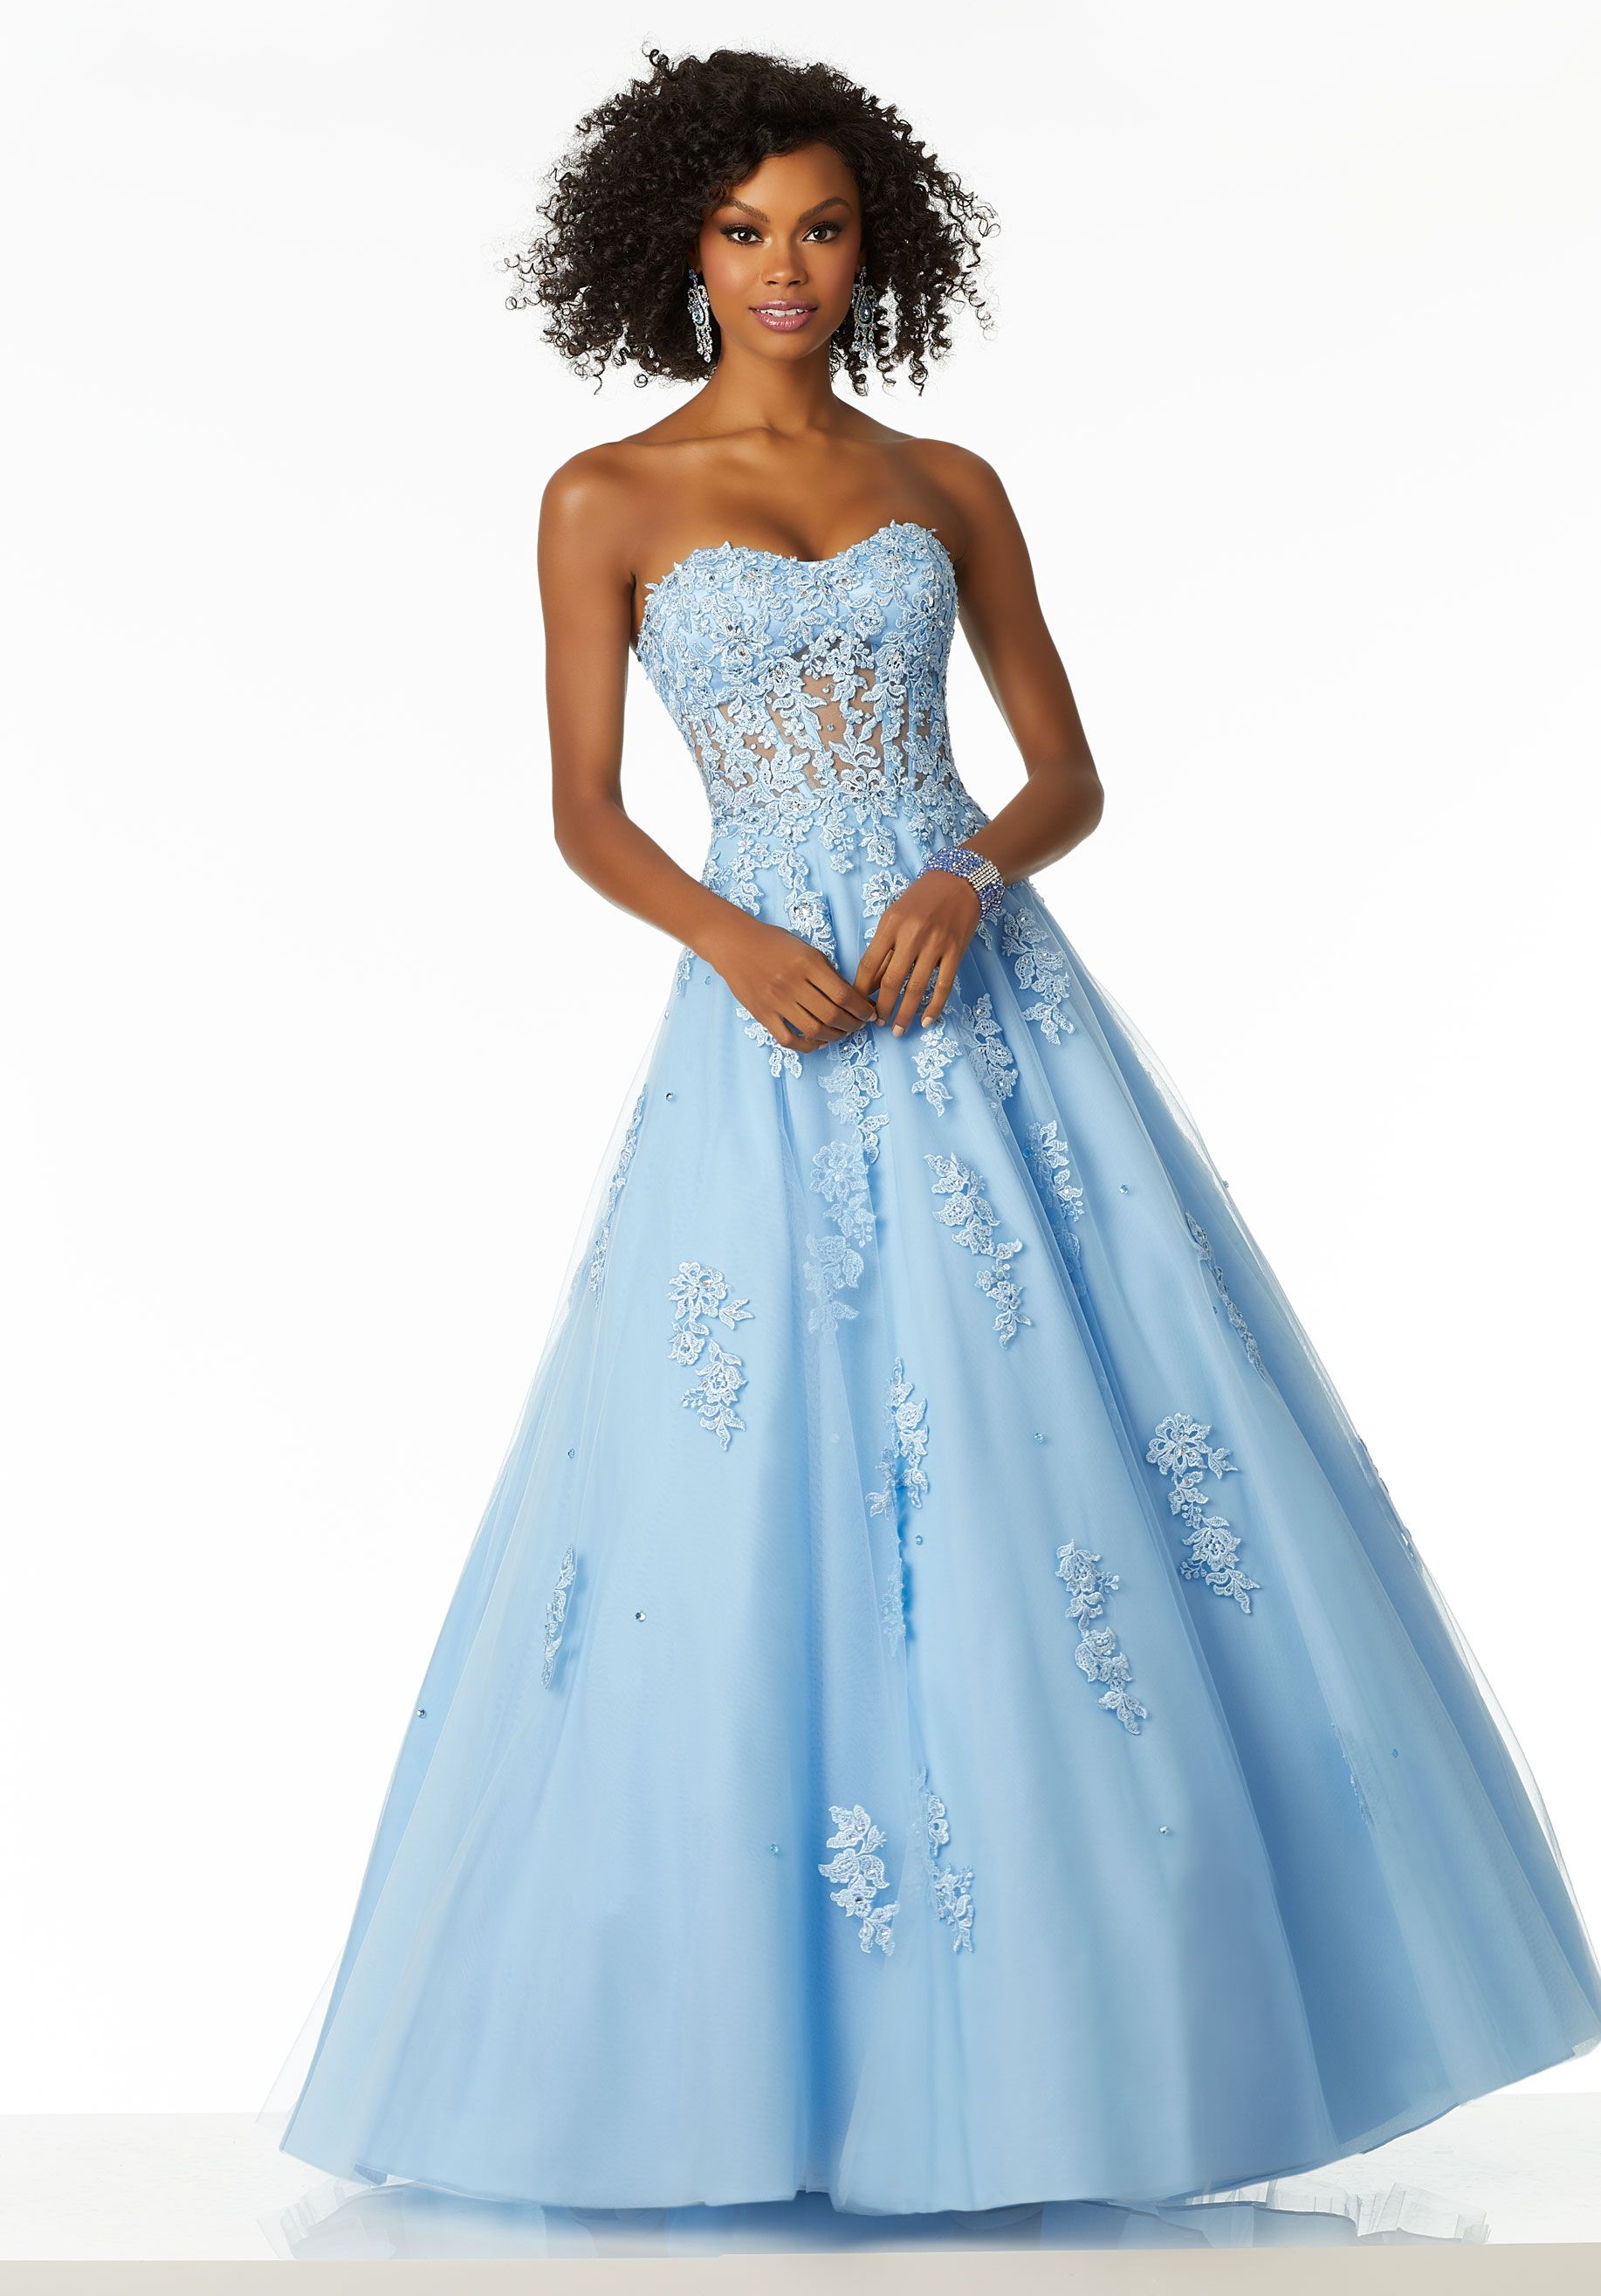 Soft A-Line Ballgown Featuring a Sheer Boned Bodice and Tulle Skirt ...